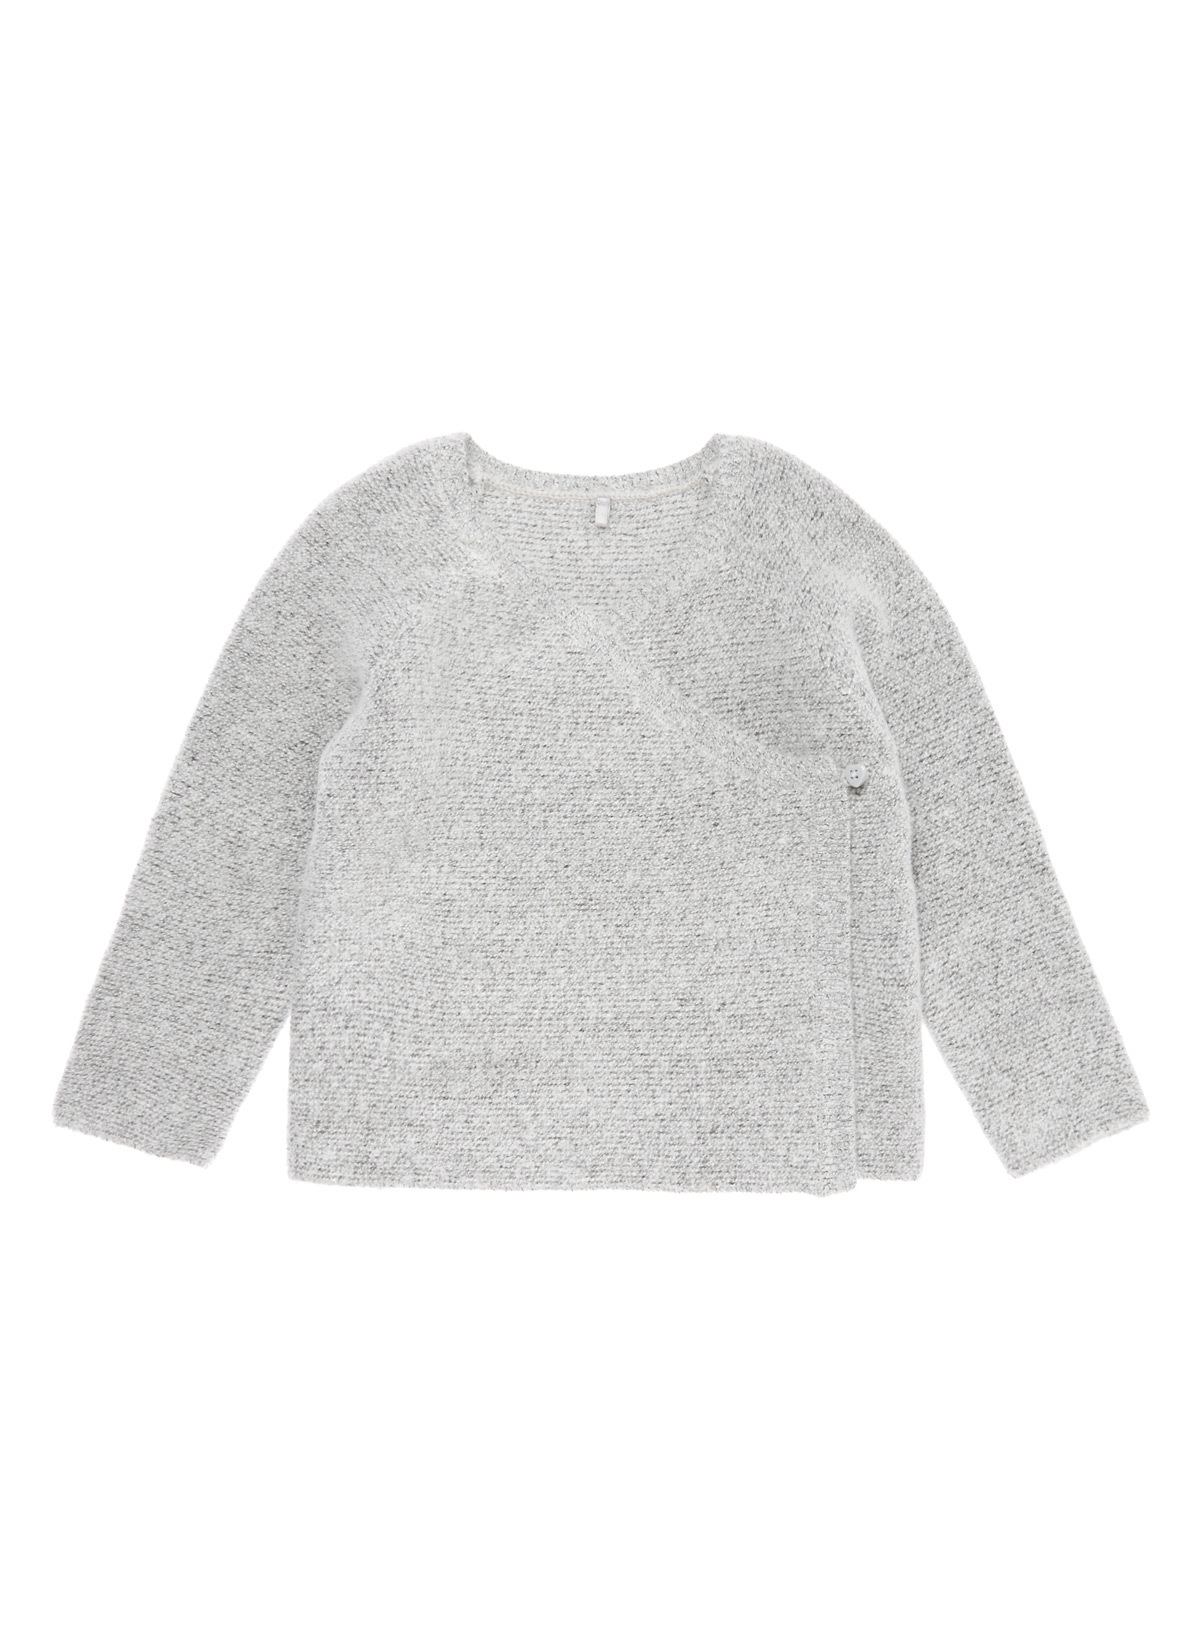 Baby Grey Wrap Lined Cardigan (0-12 months) | Tu clothing